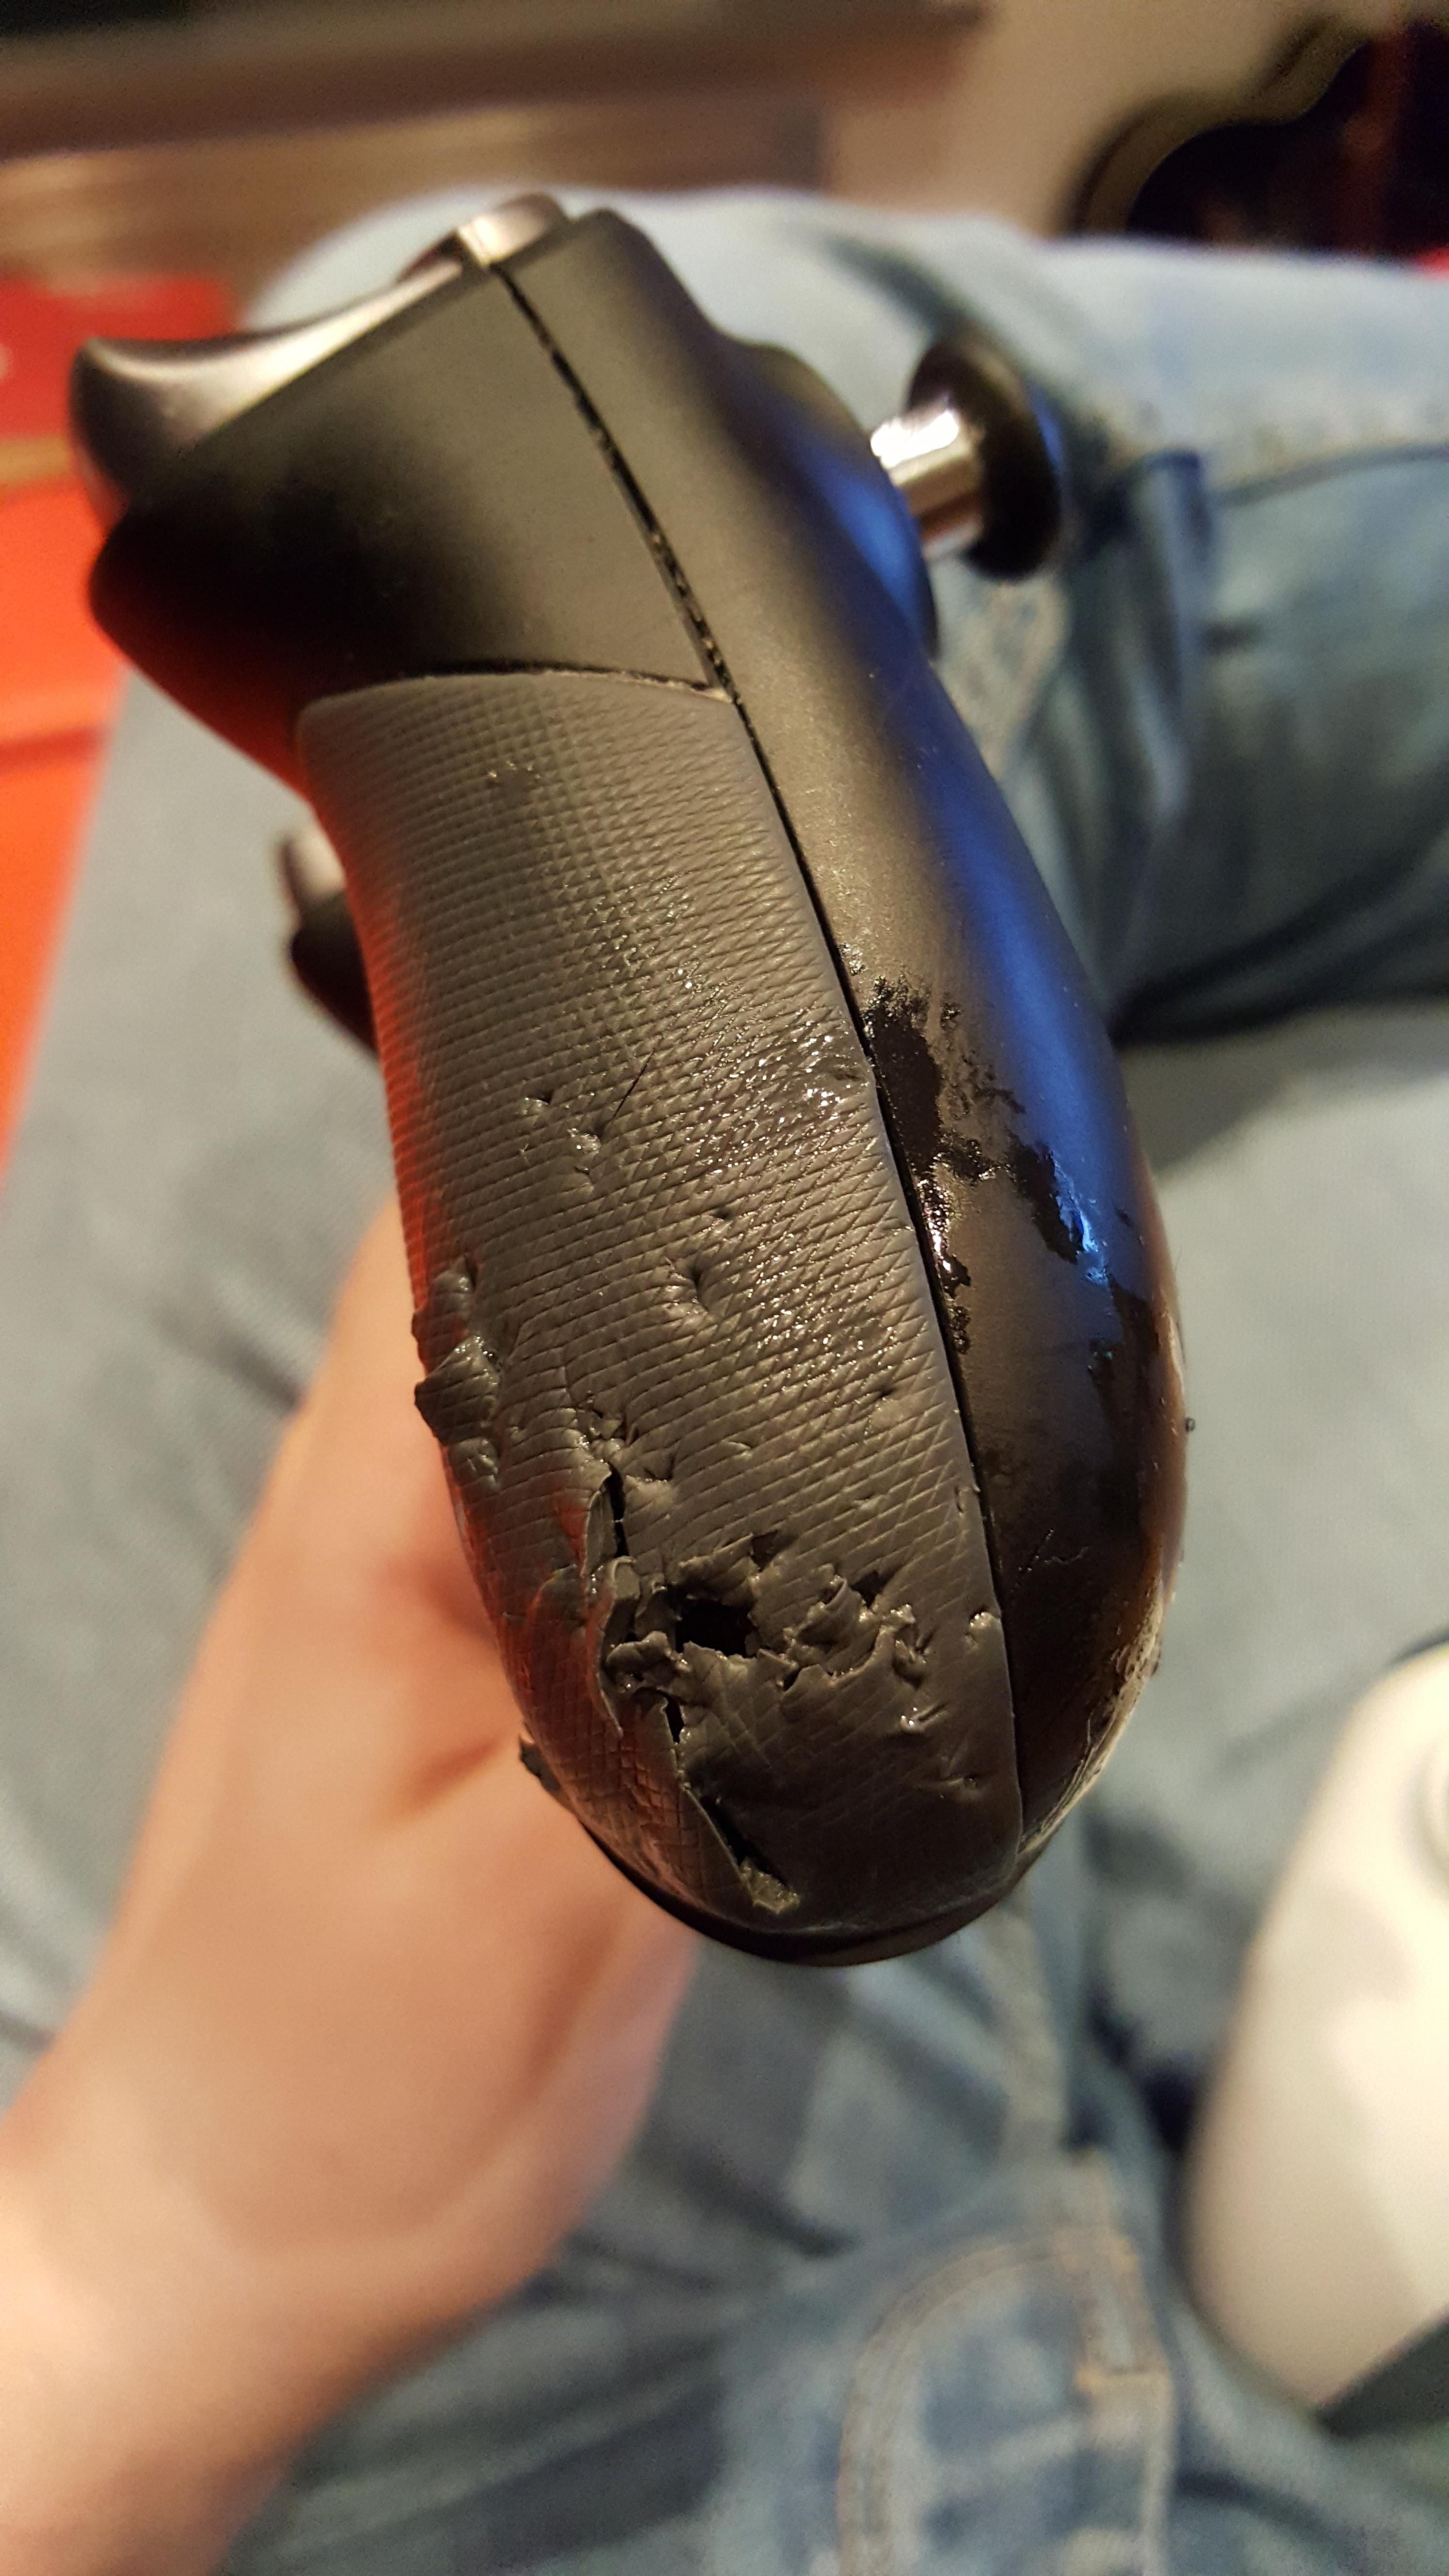 My dog ate my controller For More Information... >>> http://bit.ly/29otcOB <<< ------- #gaming #games #gamer #videogames #videogame #anime #video #Funny #xbox #nintendo #TVGM #surprise #gamergirl #gamers #gamerguy #instagamer #girlgamer #bhombingamerica #pcgamer #gamerlife #gamergirls #xboxgamer #girlgamer #gtav